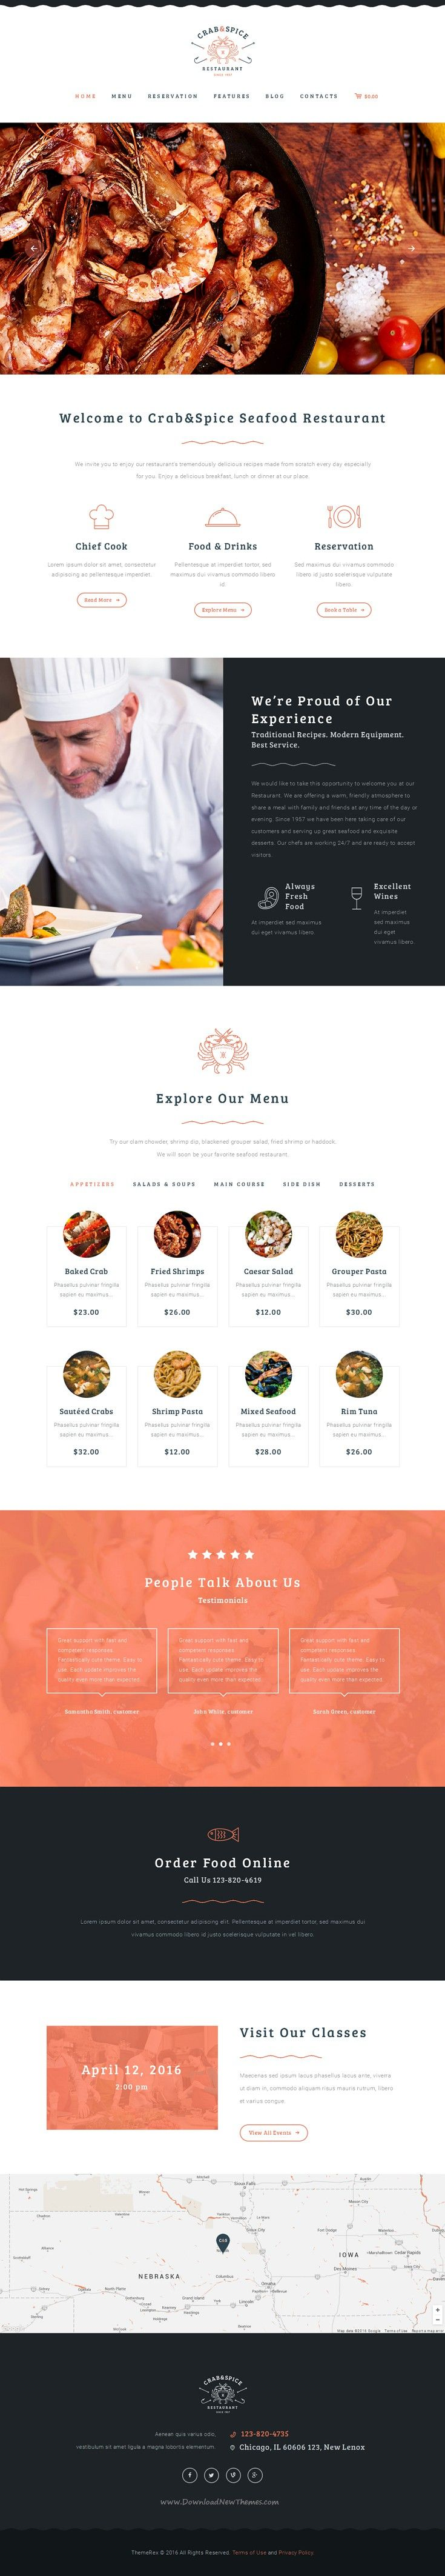 CRAB & SPICE combines modern and interactive design responsive WordPress #Theme for #restaurant, cafe, bar or food business yummy #website. Download Now!